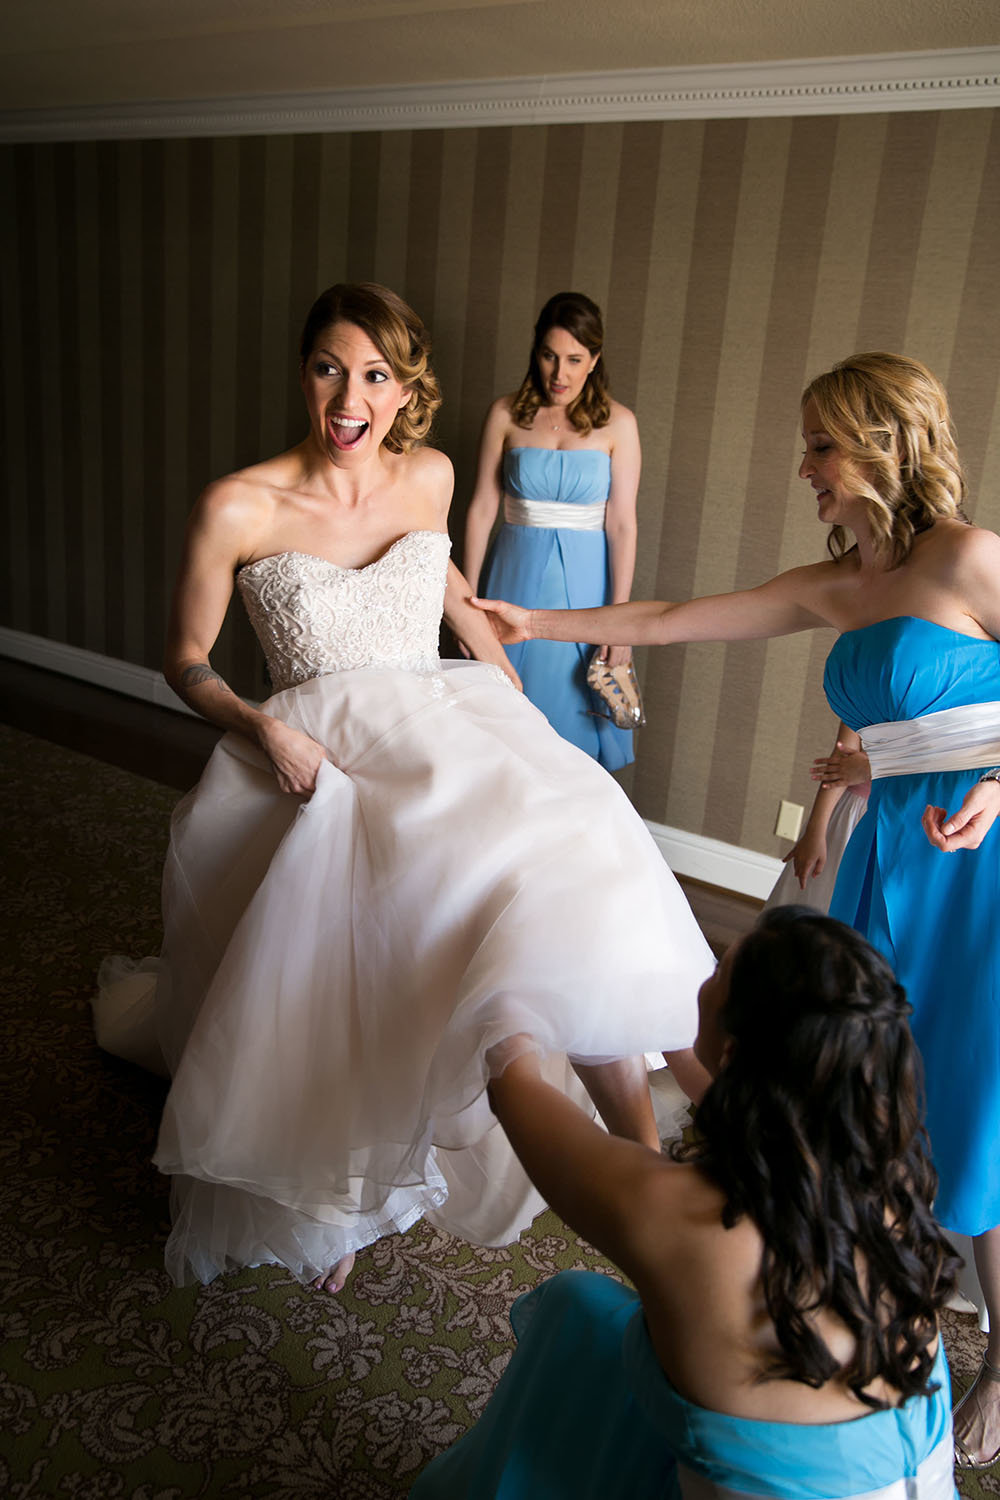 Bride and bridesmaids getting ready before the wedding ceremony